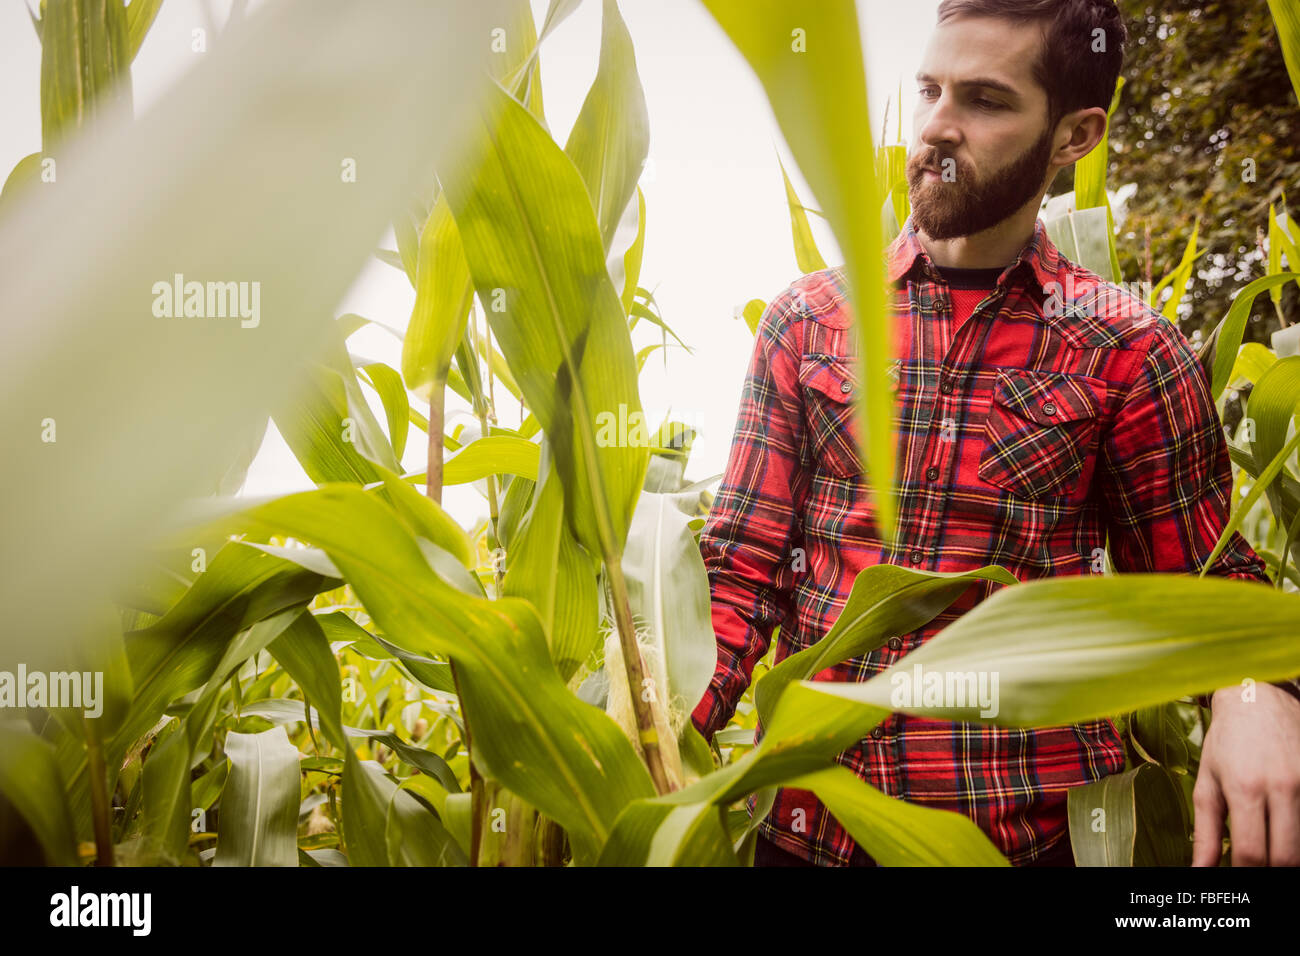 Man looking at corn - Stock Image